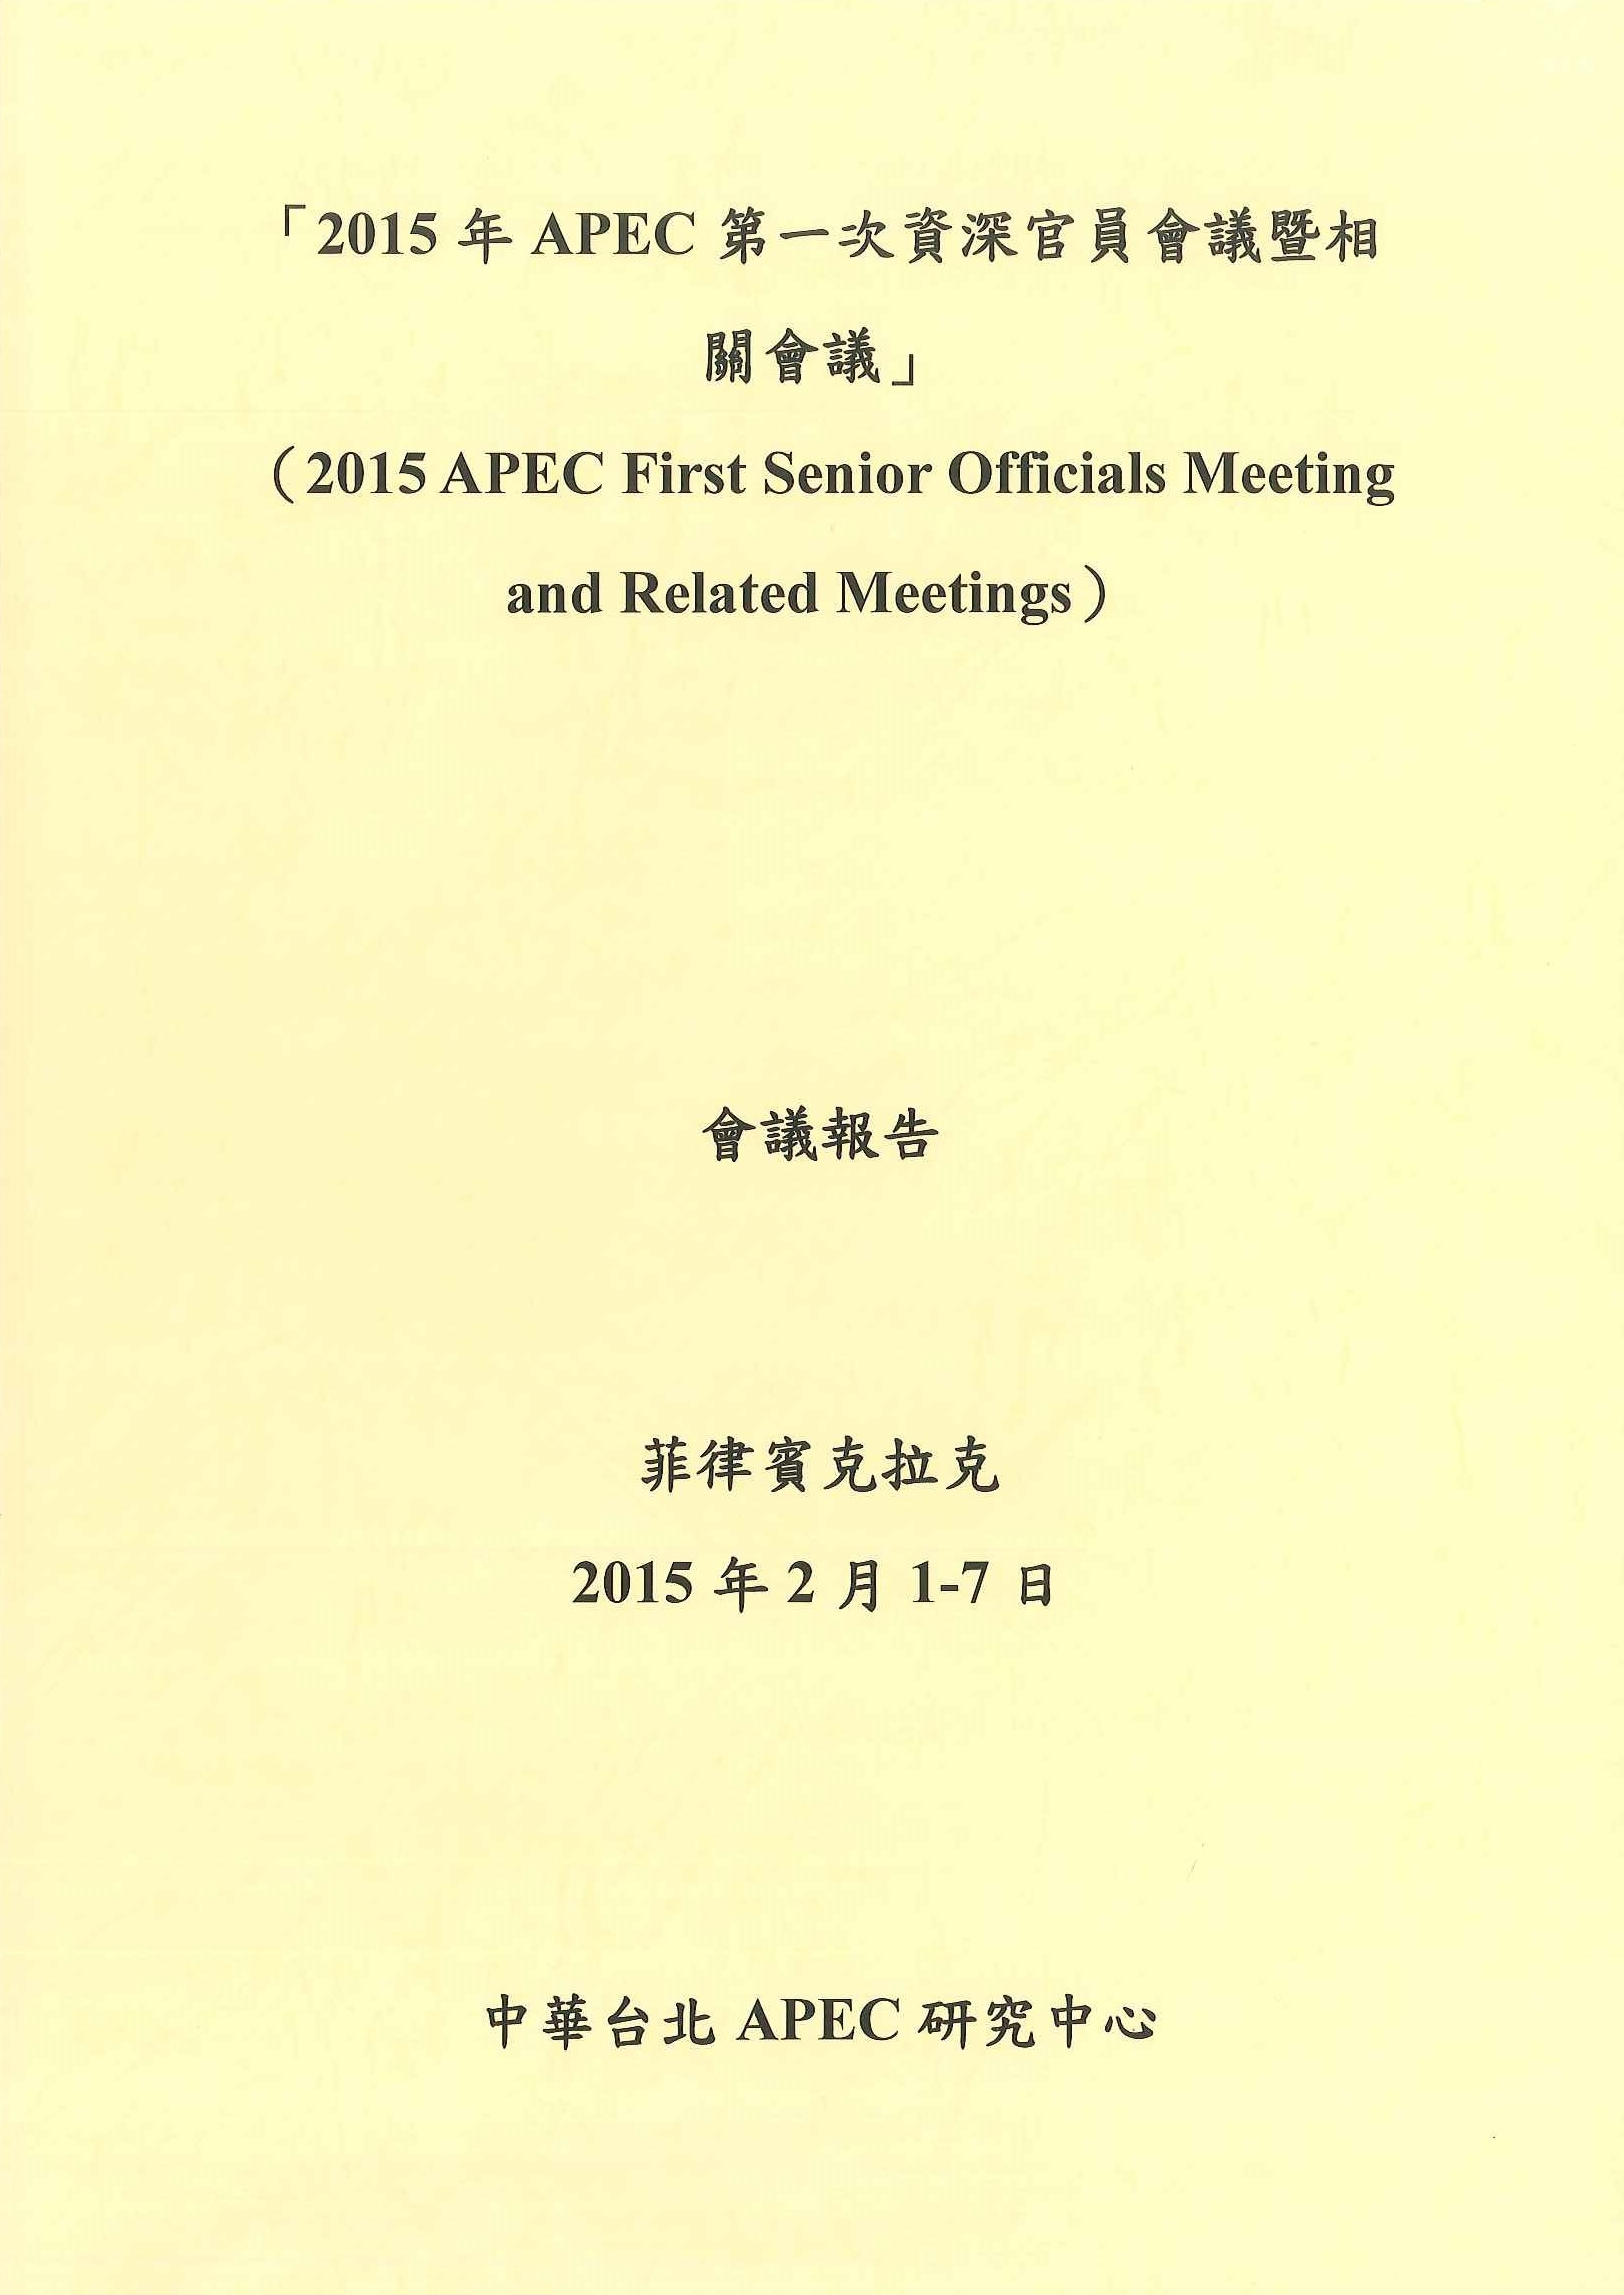 2015年APEC 第一次資深官員會議暨相關會議會議報告=2015 APEC first senior officials meeting and related meetings